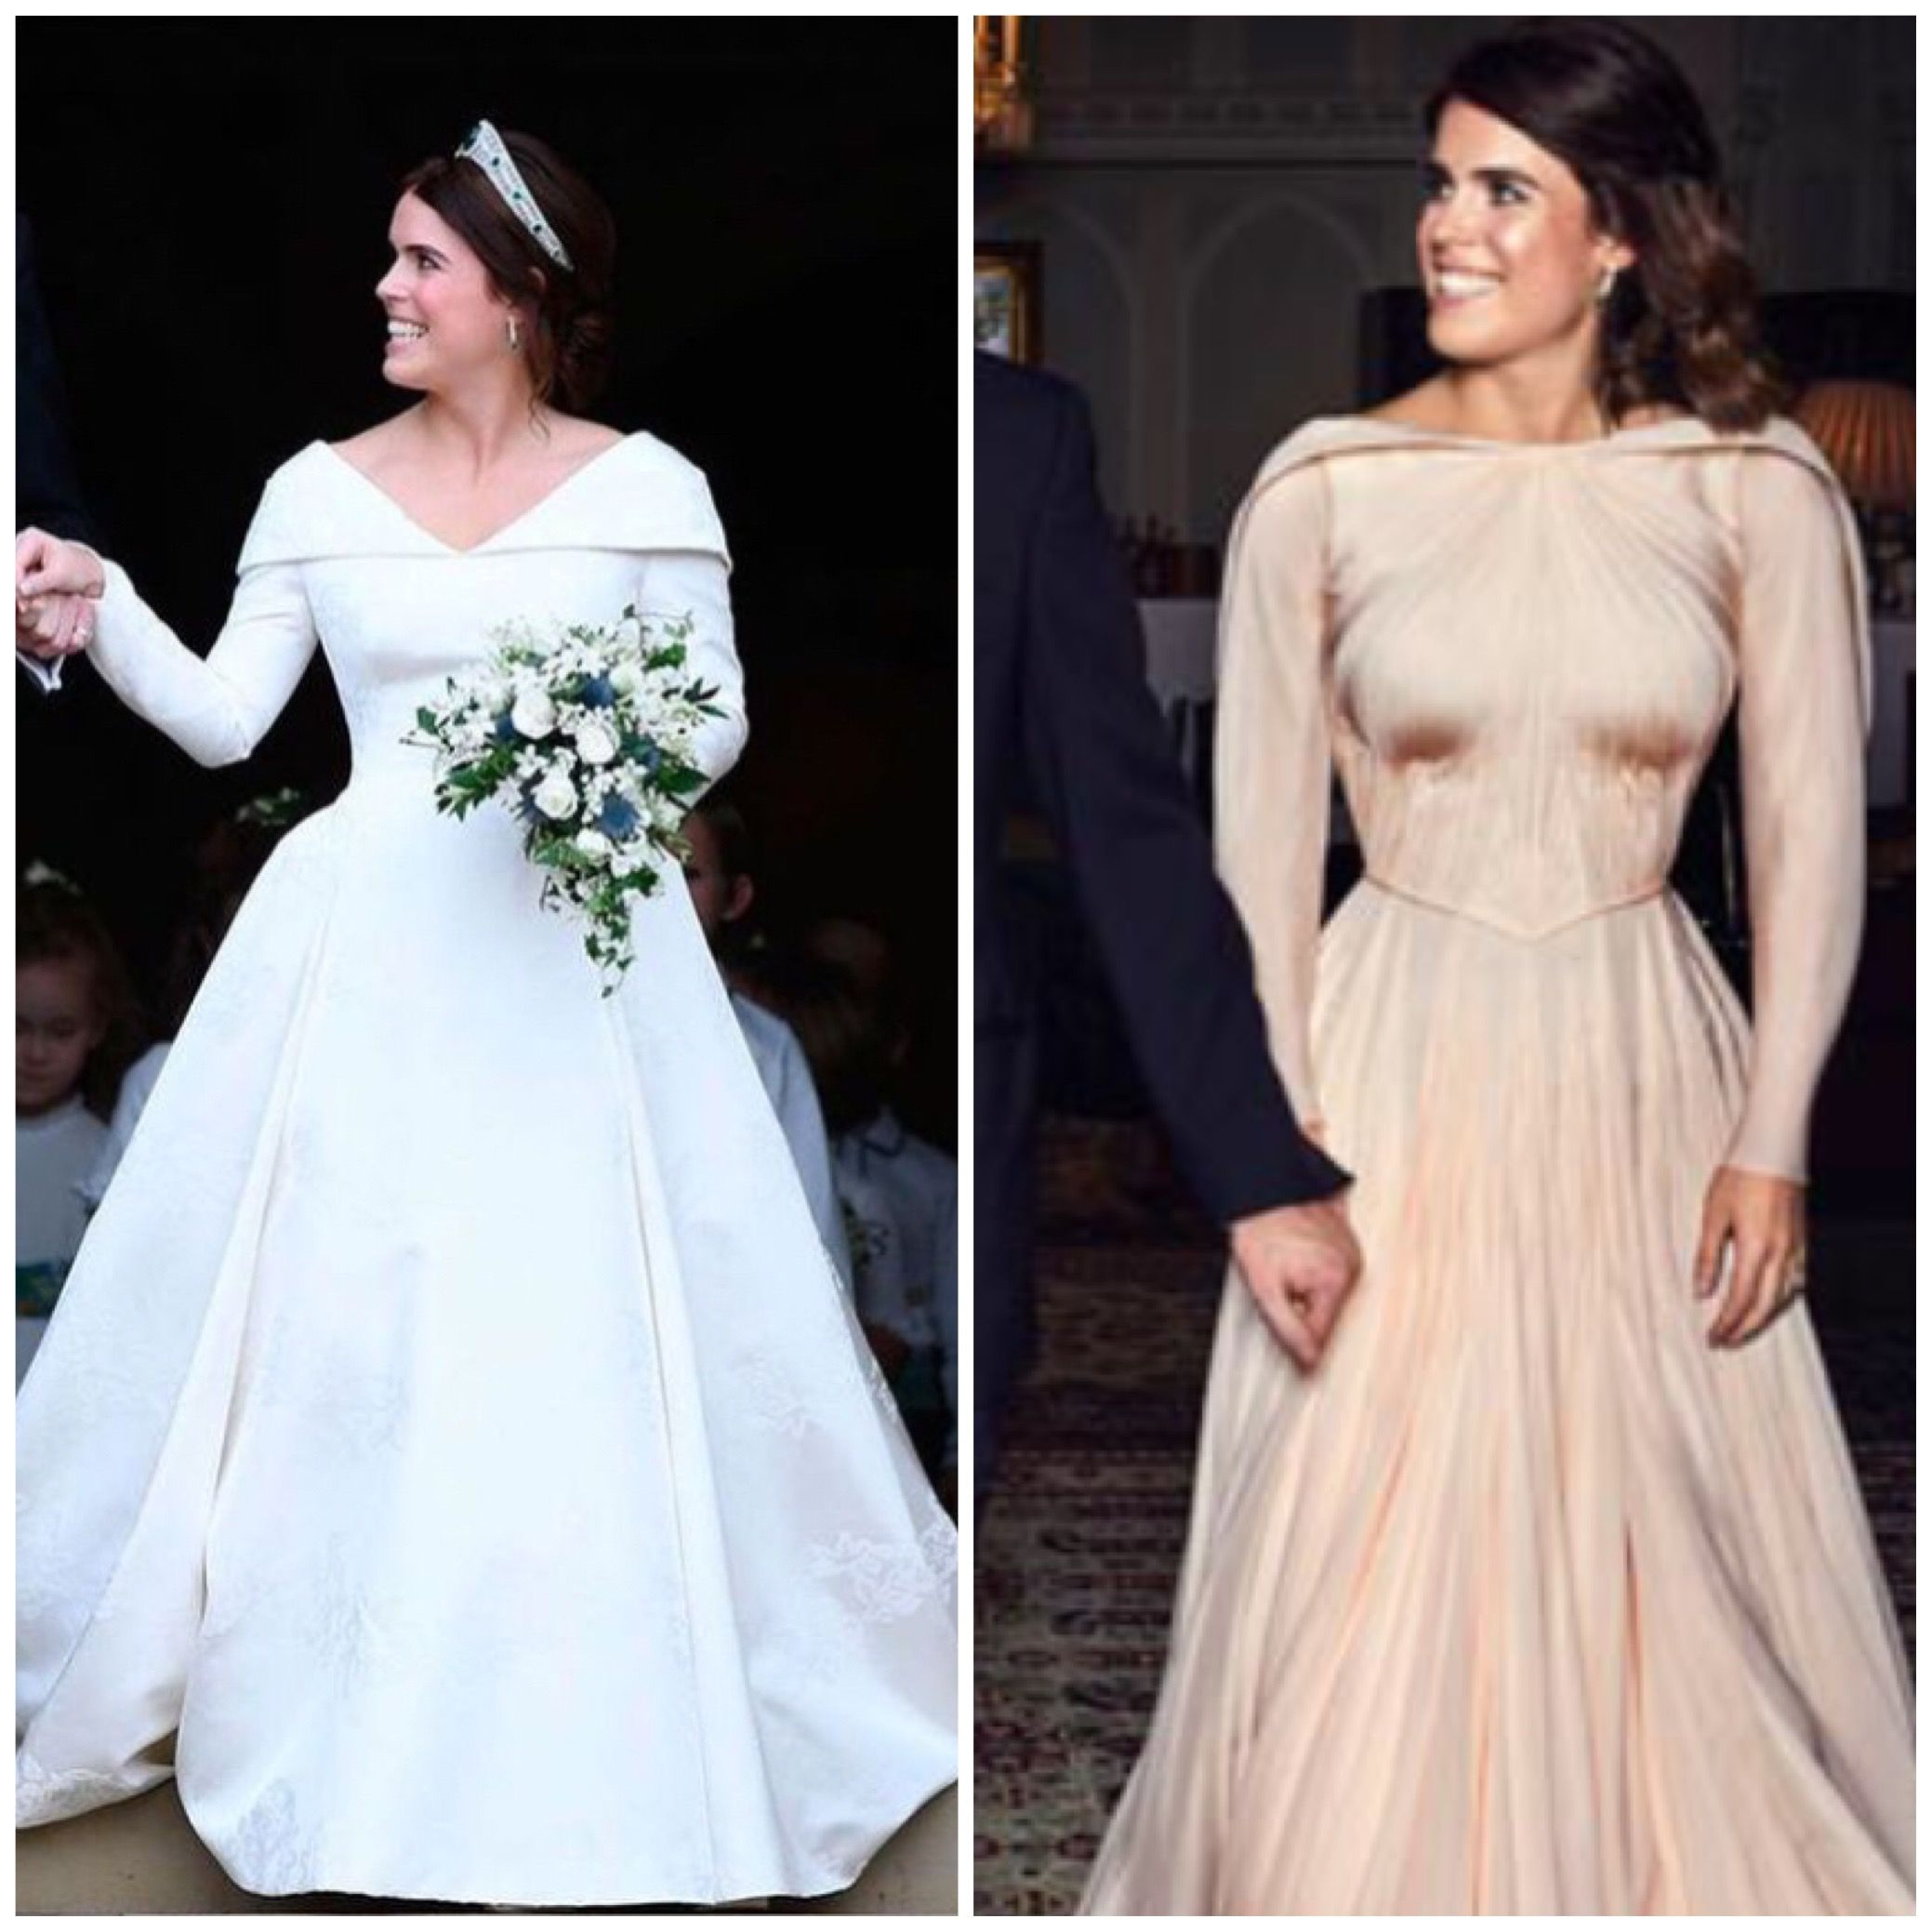 22371010e168 12 10-2018 Princess Eugenie wore a blush Zac Posen gown for her evening